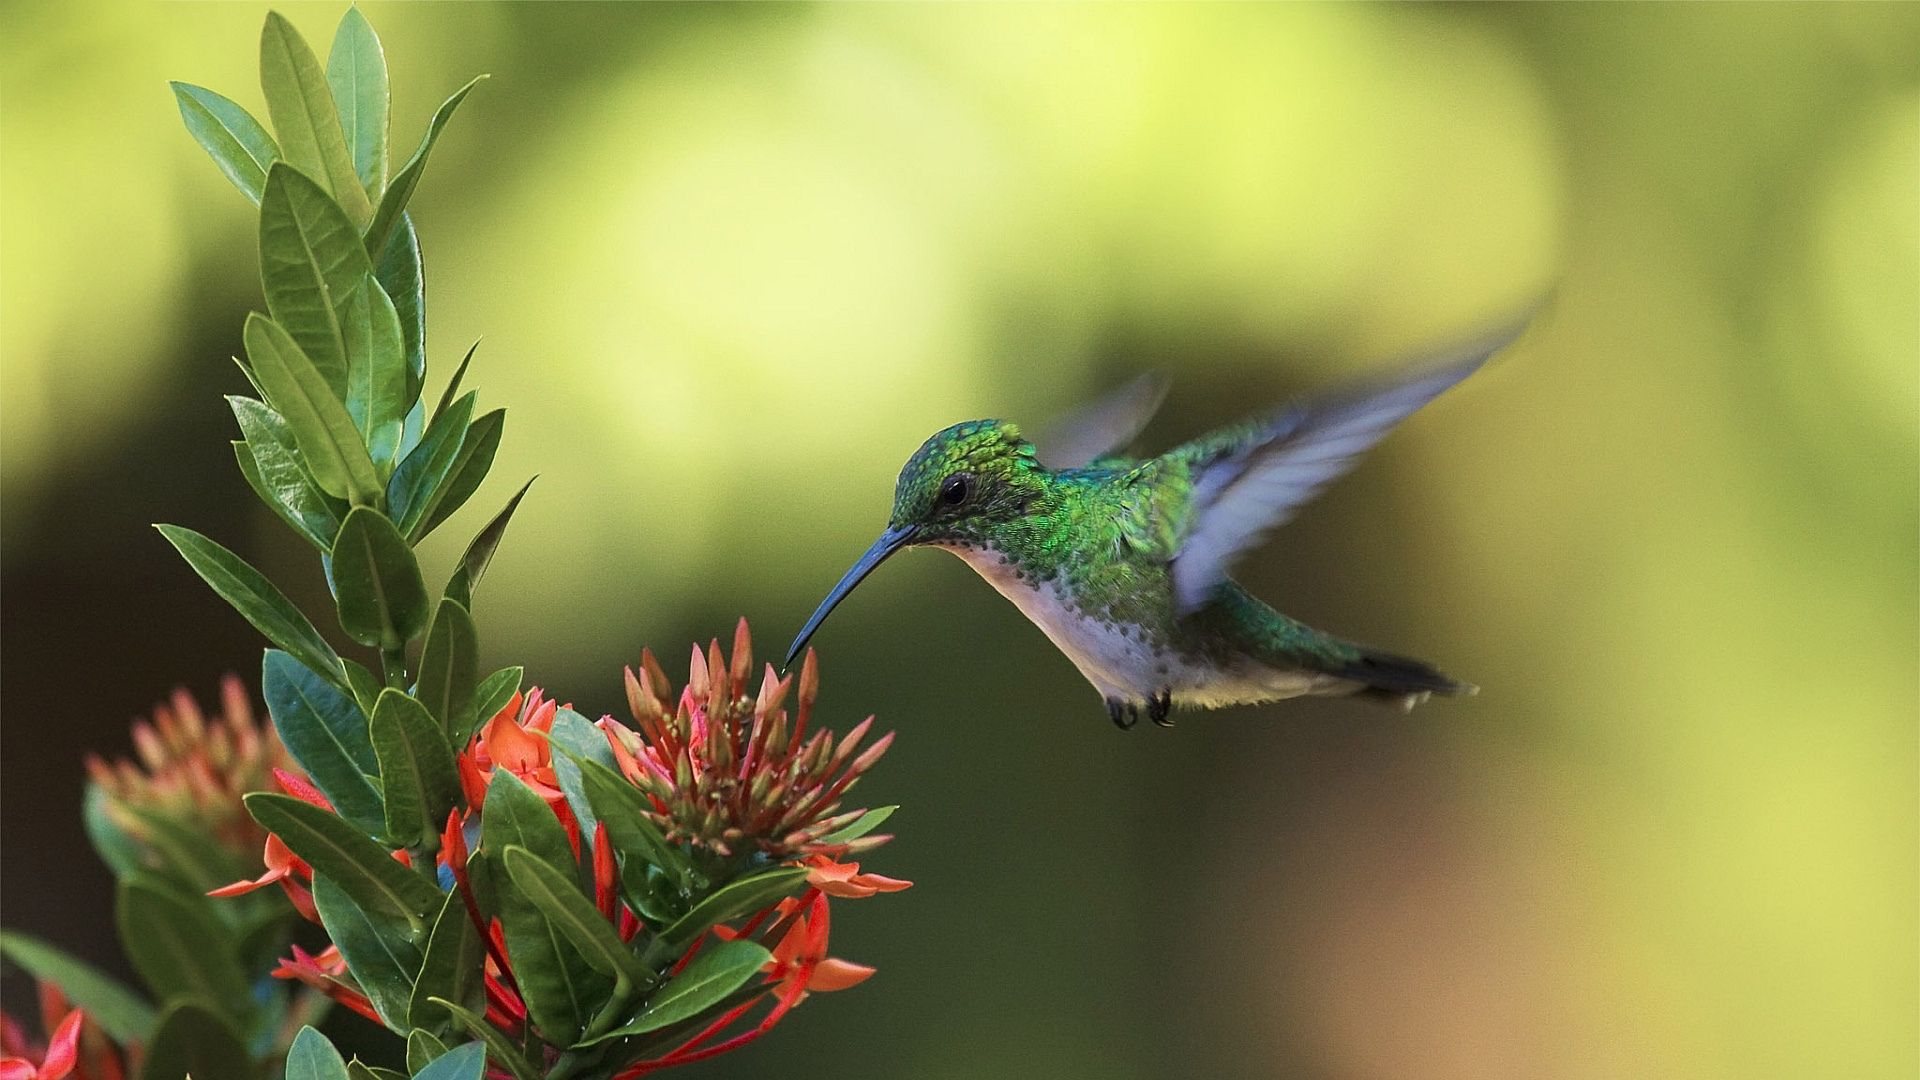 Free Download Wallpaper: Colibri Wallpapers High Quality